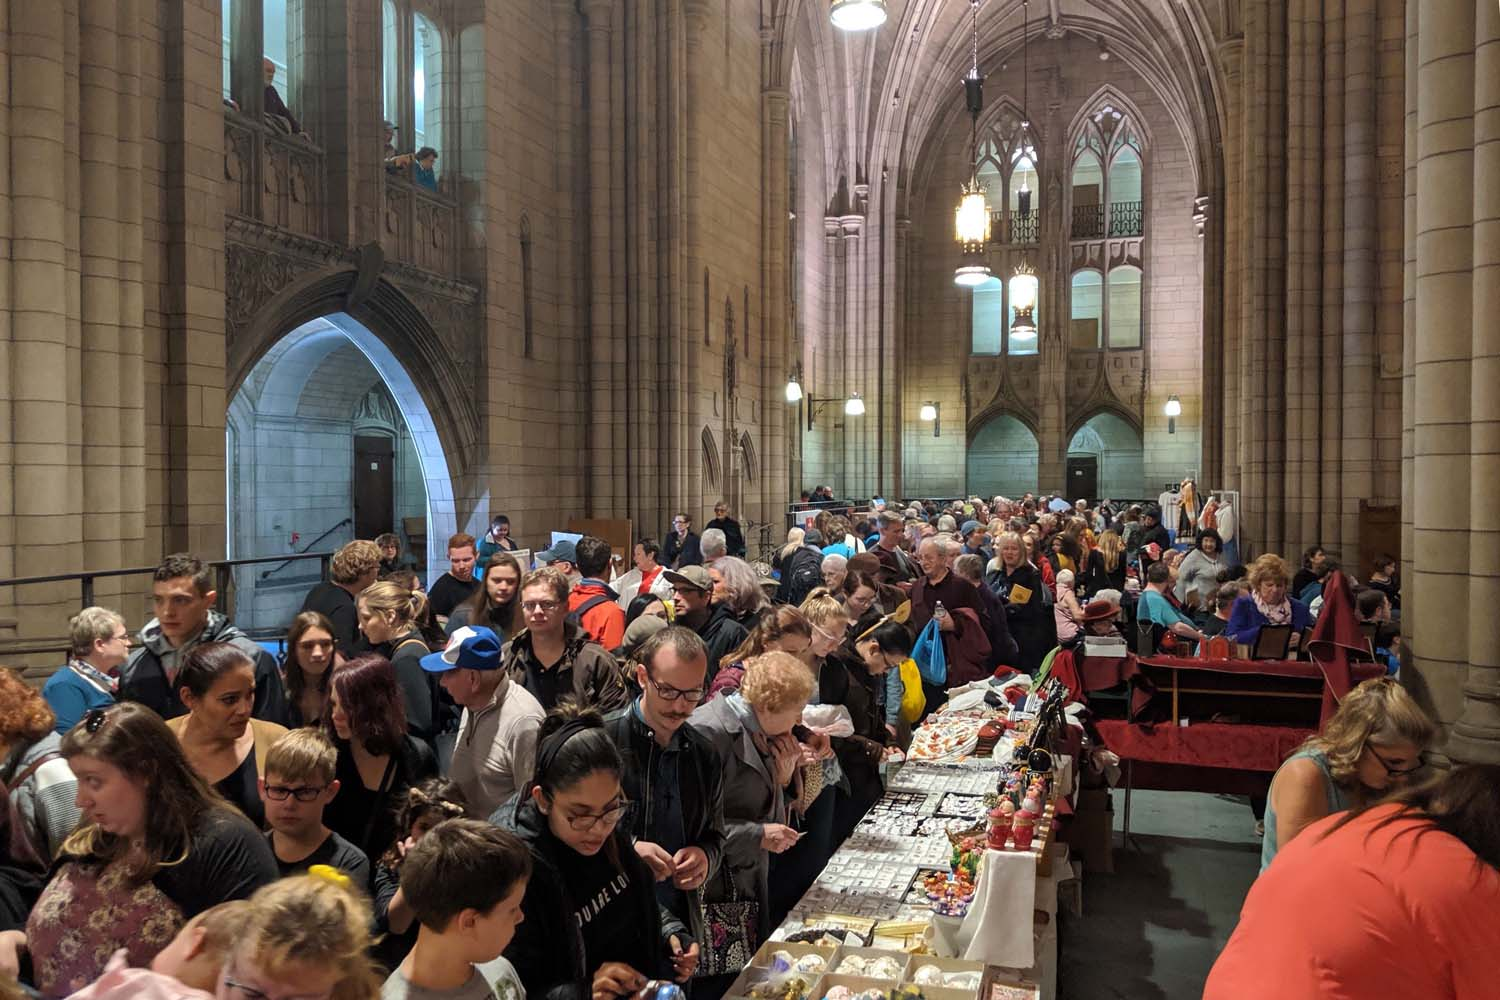 Vendors sell Christmas ornaments and other knickknacks in the Cathedral of Learning during the 29th annual Slovak Festival on Sunday.